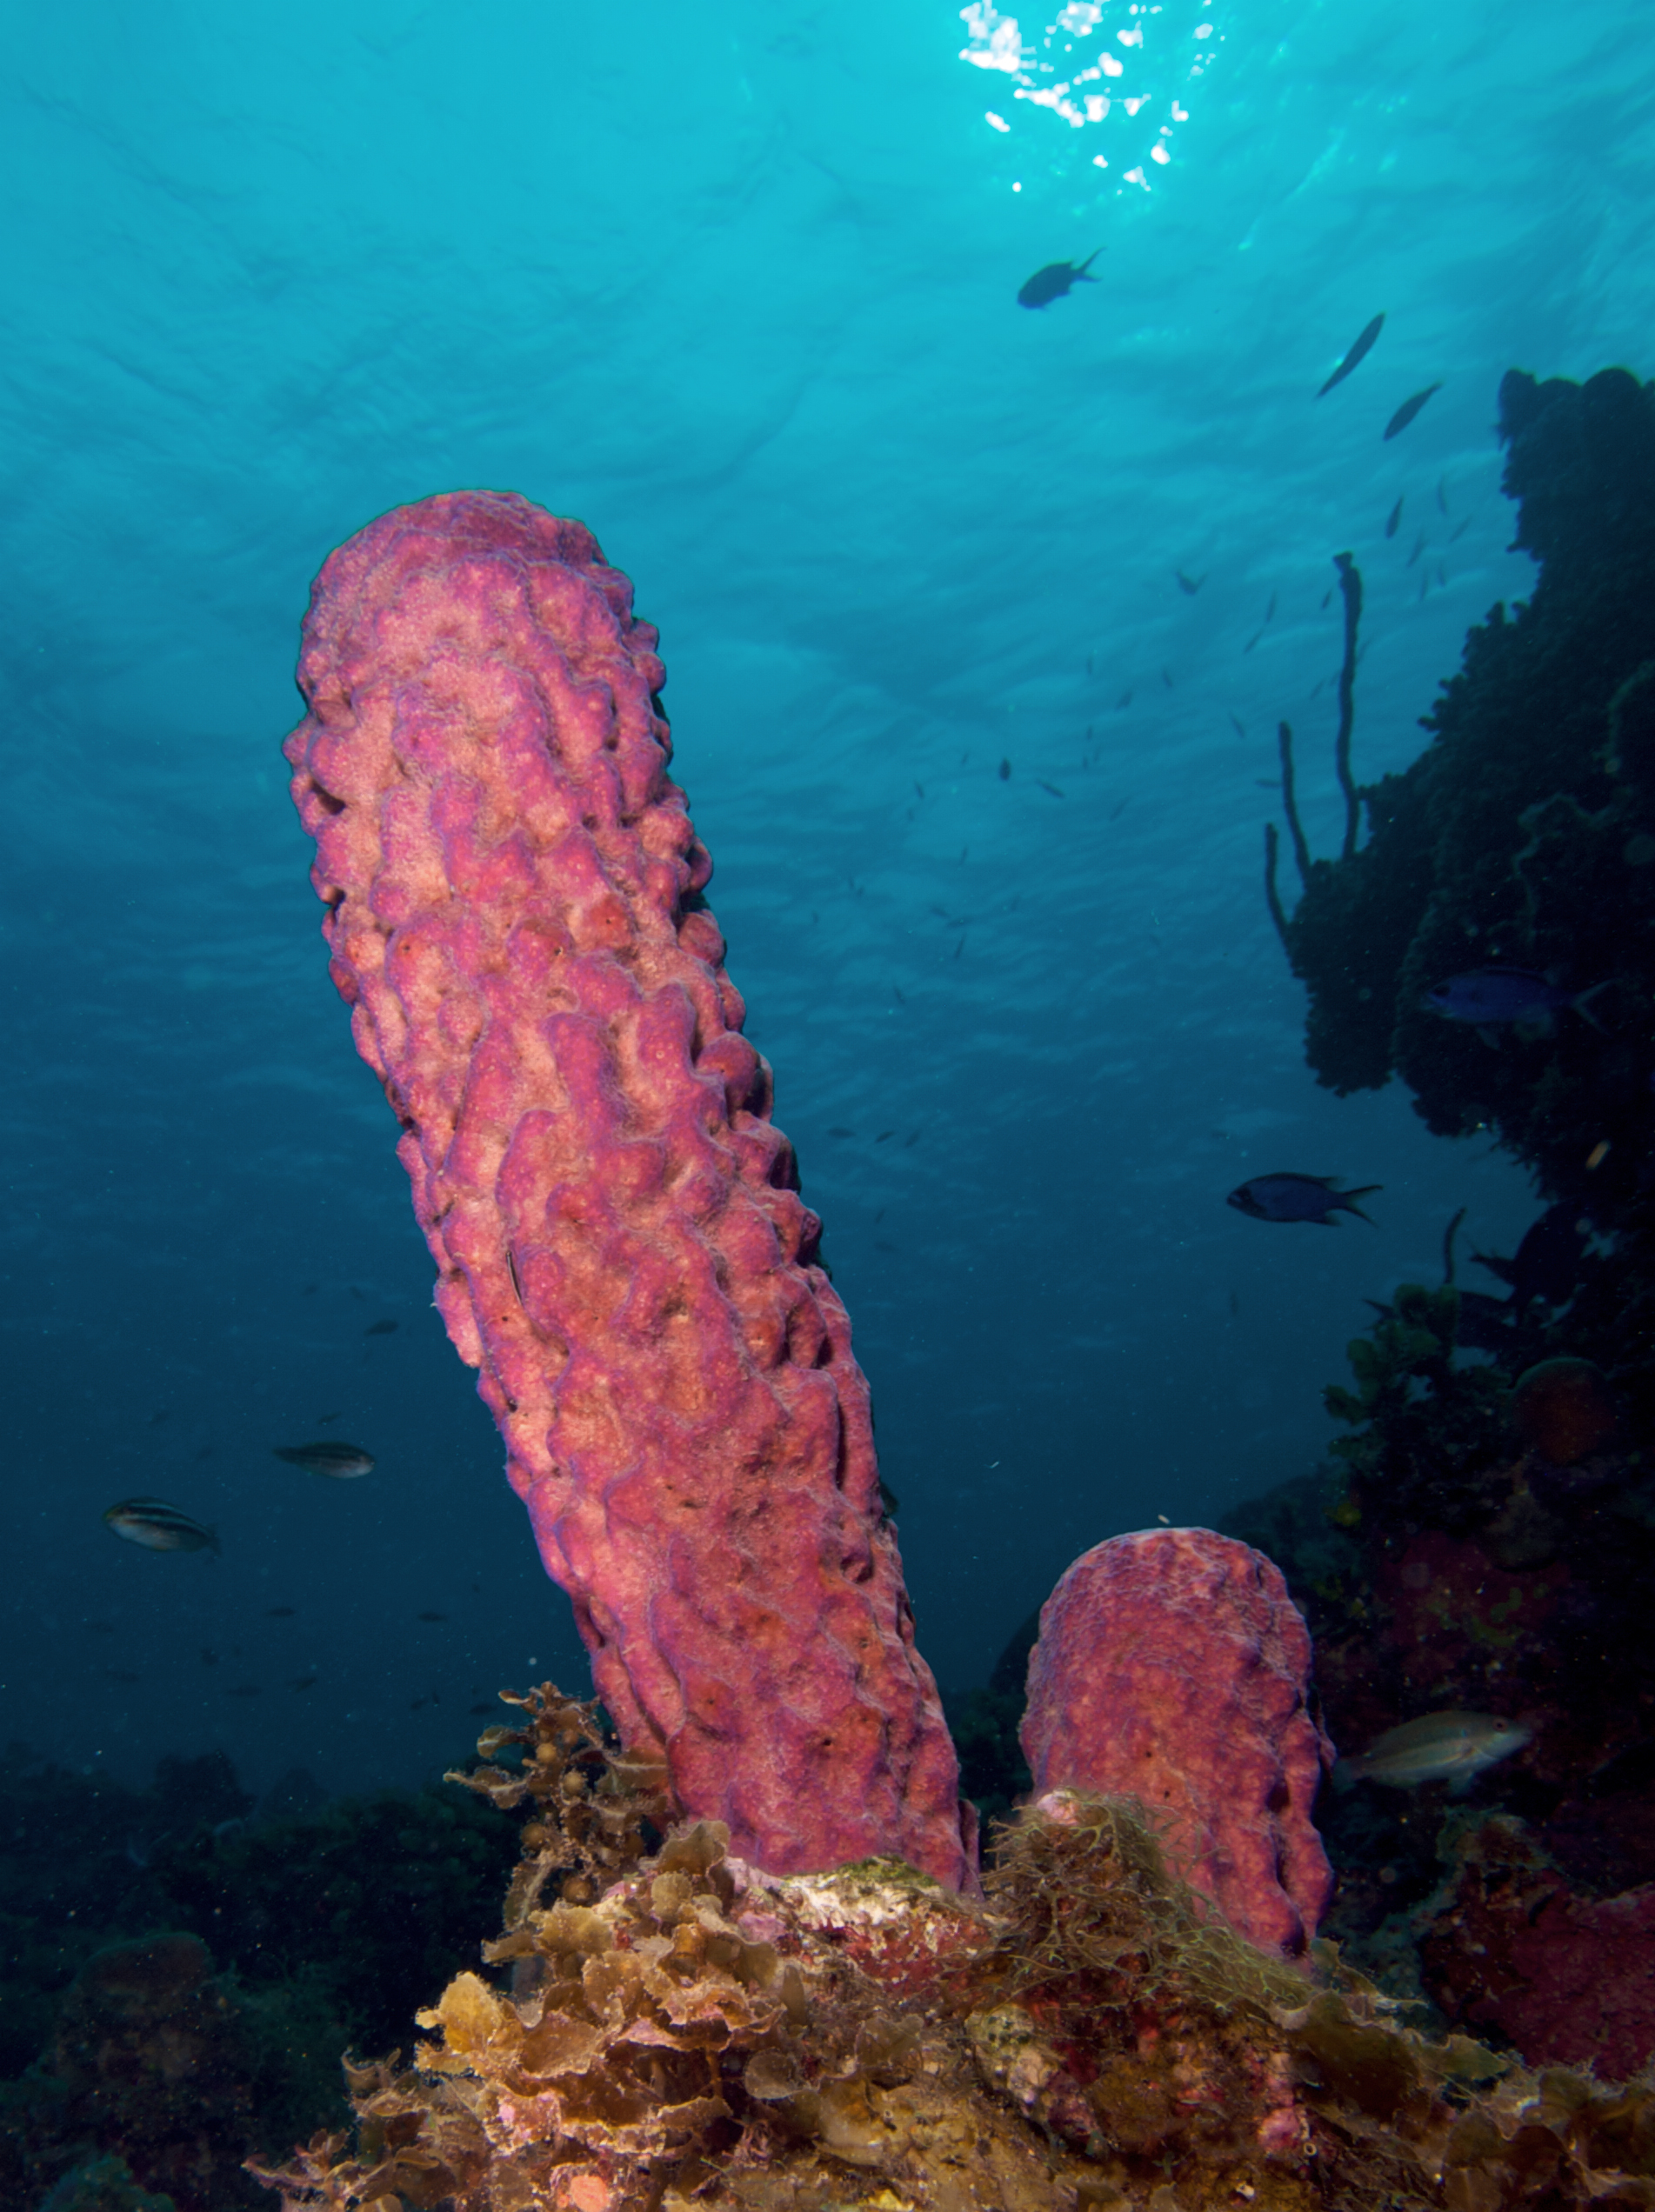 Sponges reproduce sexually through a process called